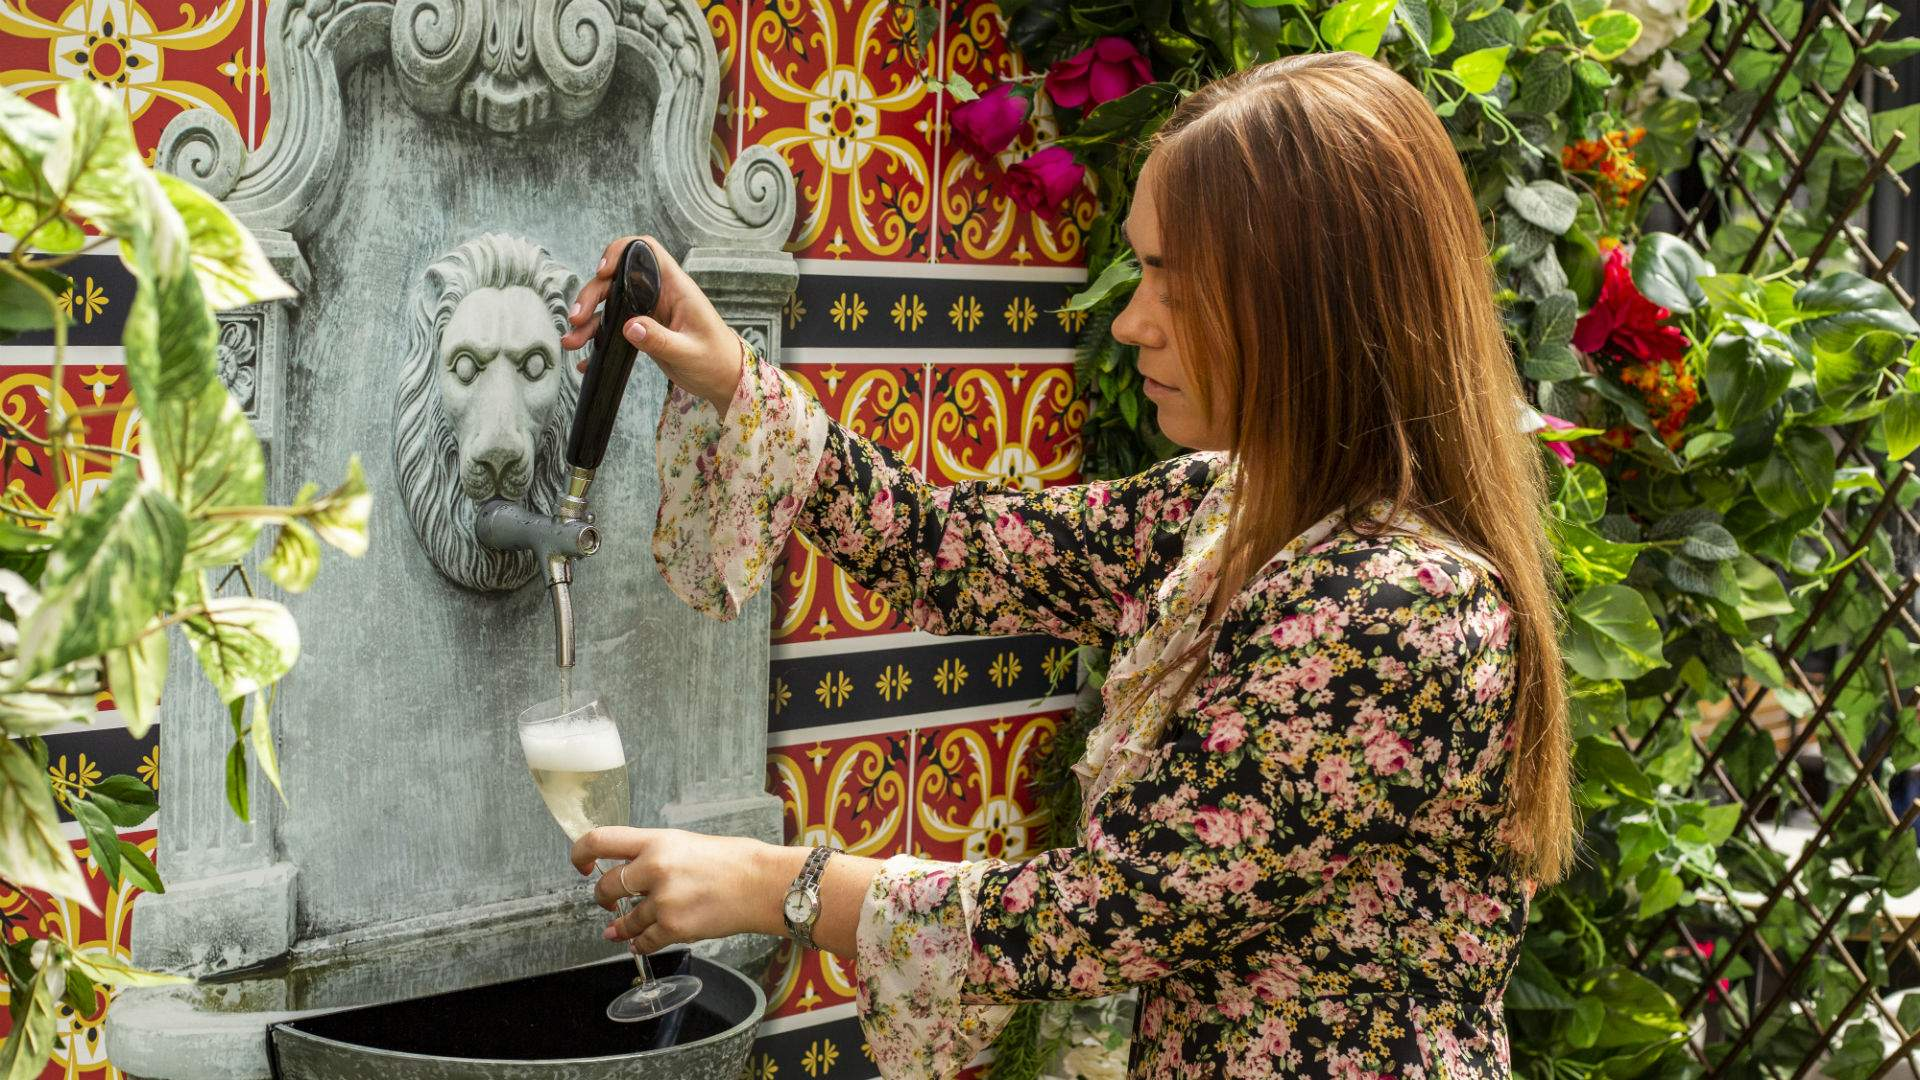 Surry Hills' The Winery Is Now Home To A Bottomless Prosecco Fountain photo